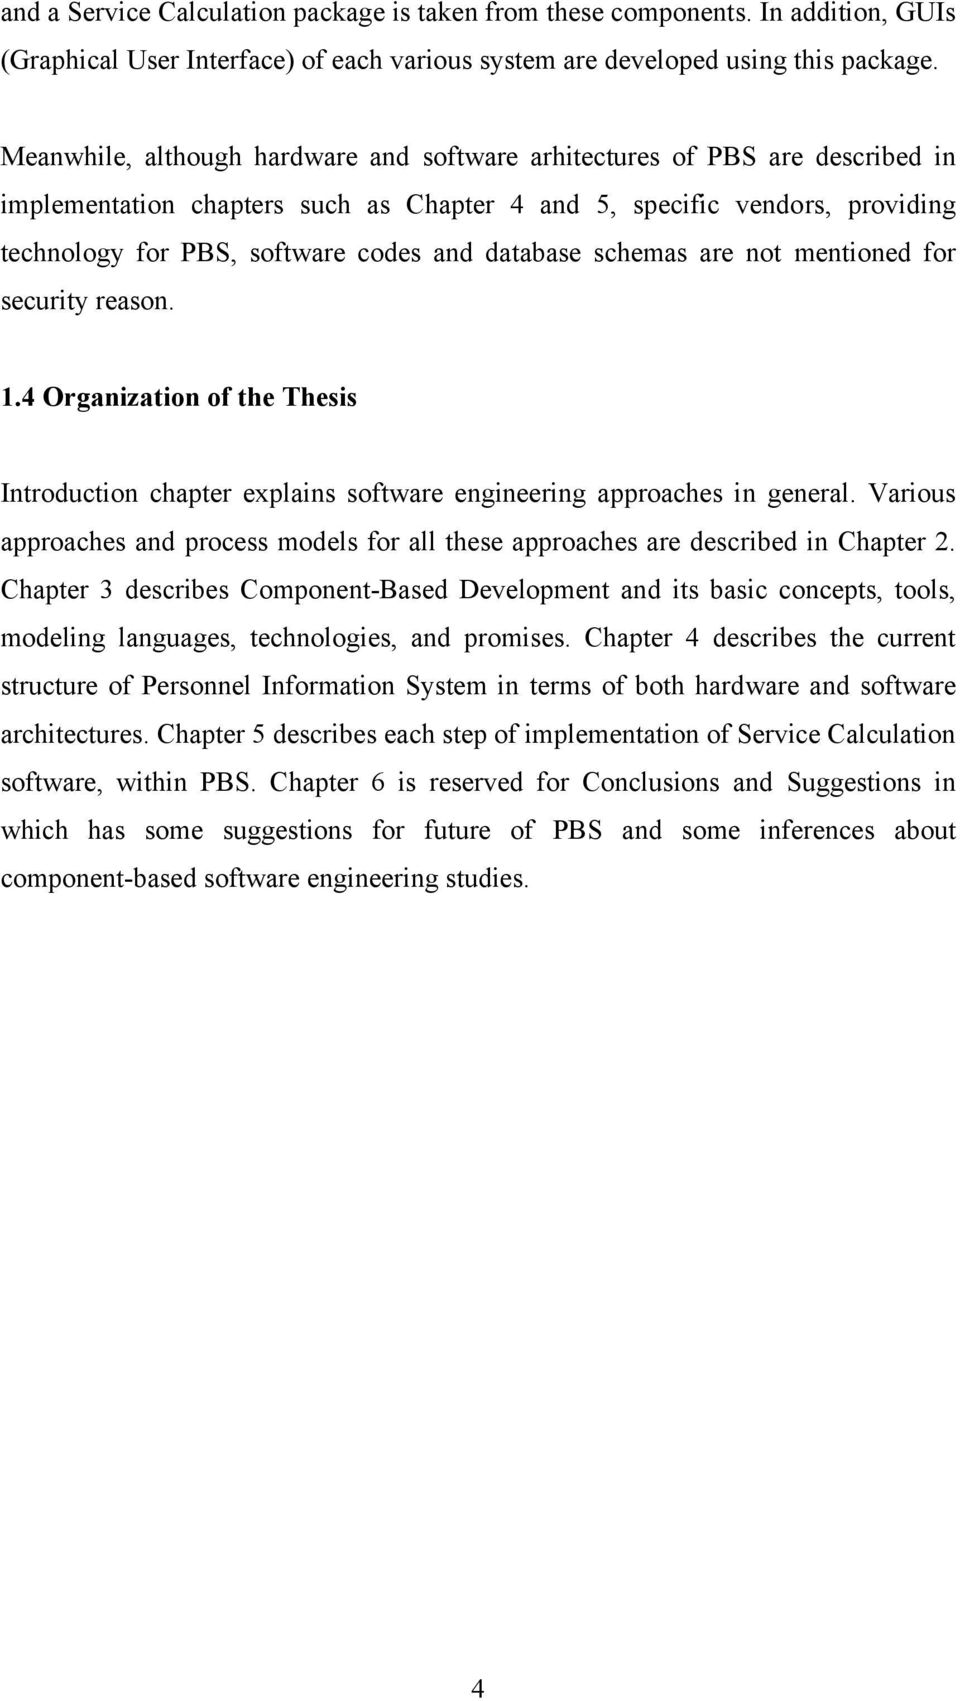 database schemas are not mentioned for security reason. 1.4 Organization of the Thesis Introduction chapter explains software engineering approaches in general.